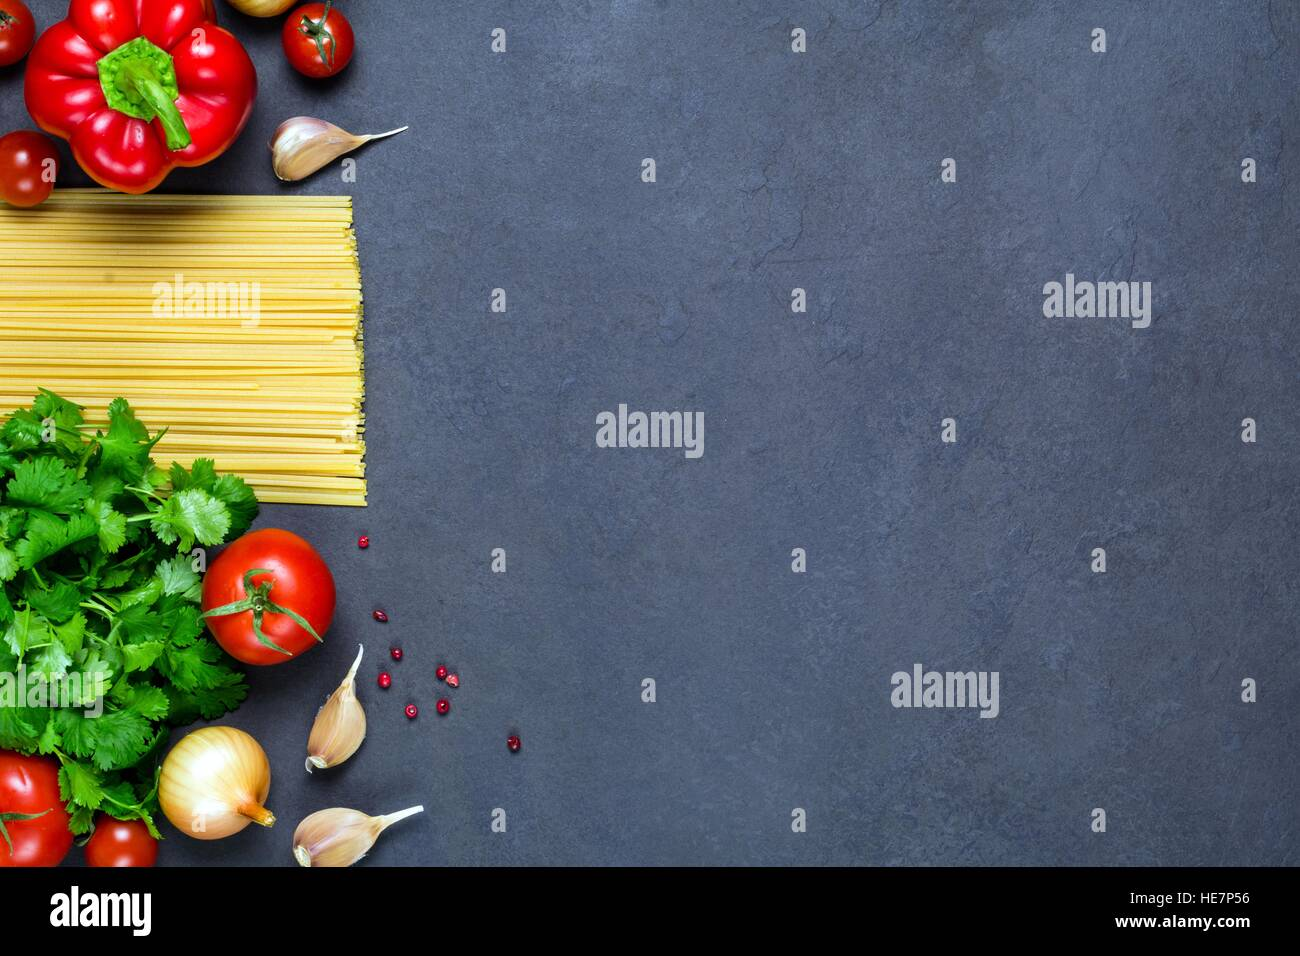 Pasta, spices and vegetables on slate background - cooking ingredients for italian cuisine. Copy space for text. - Stock Image